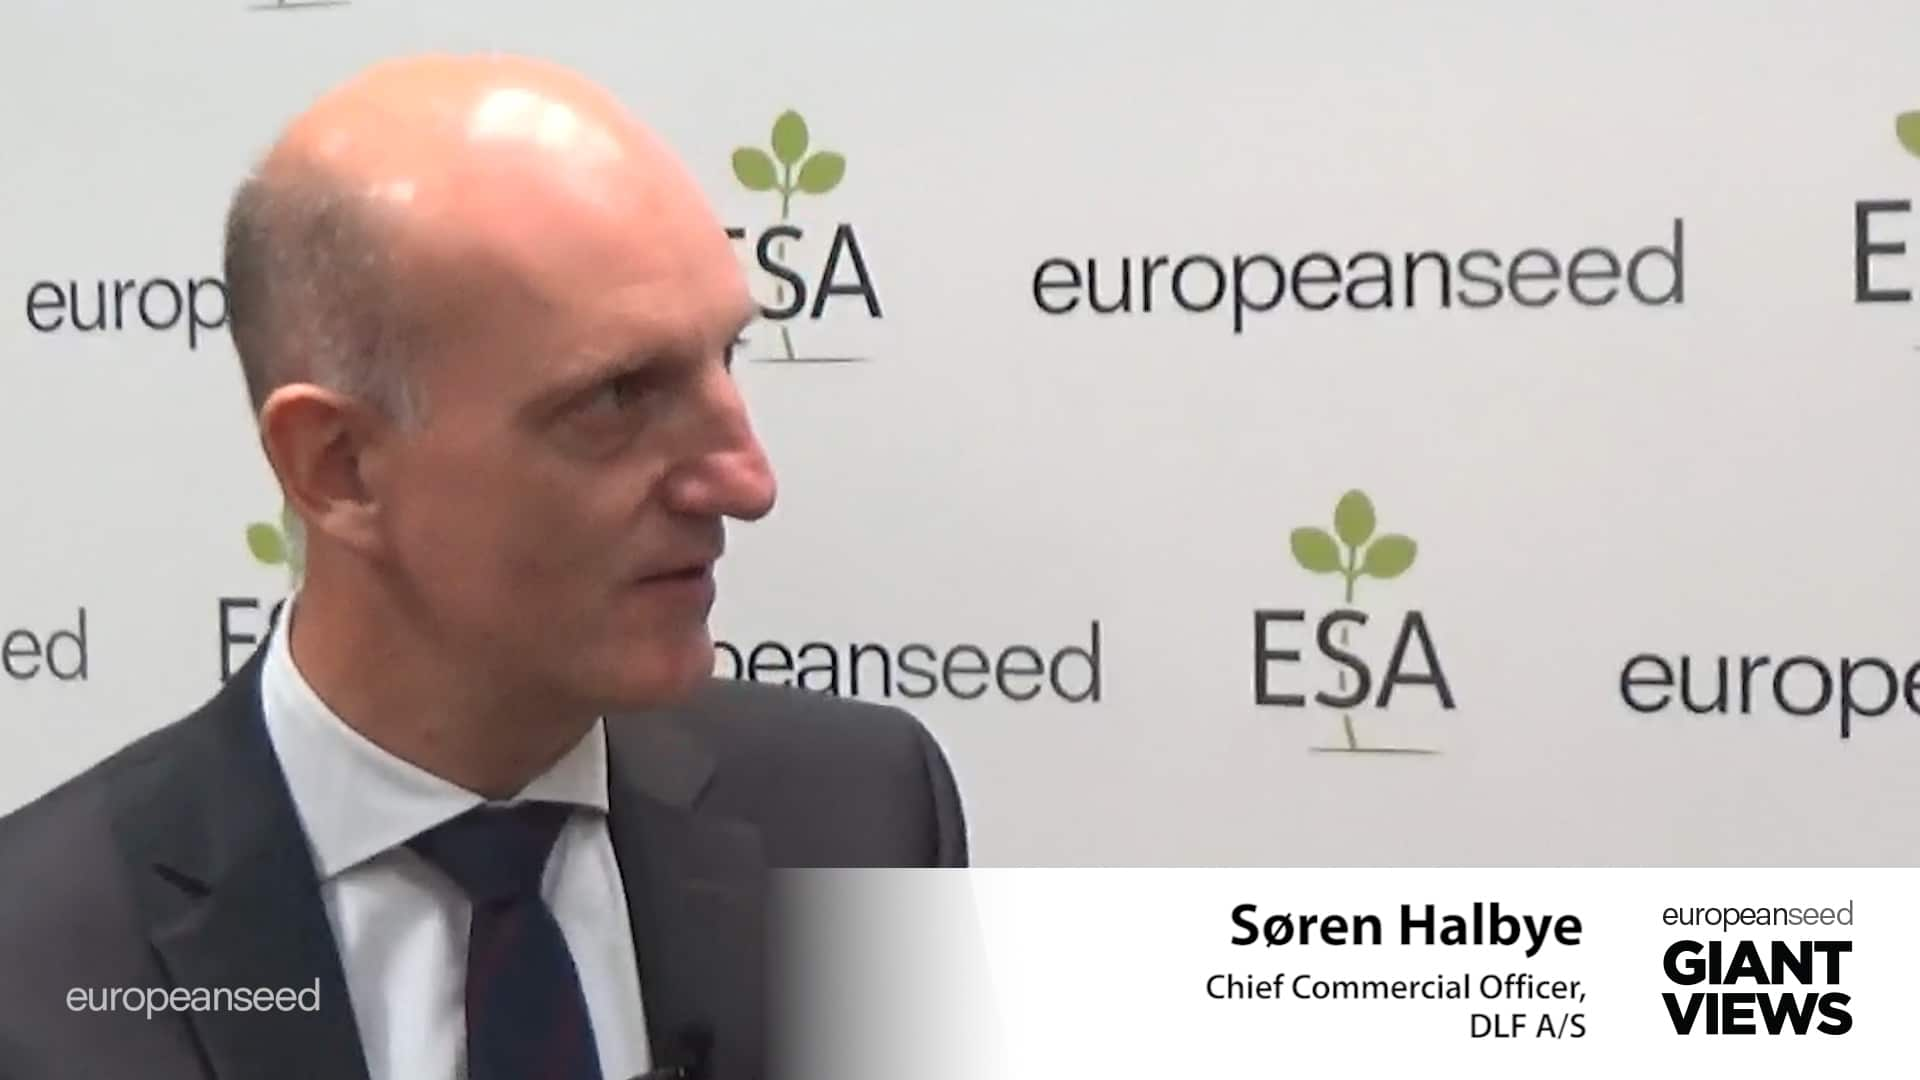 Søren Halbye (DLF A/S) Challenges in the Grass Seed Sector, Mergers